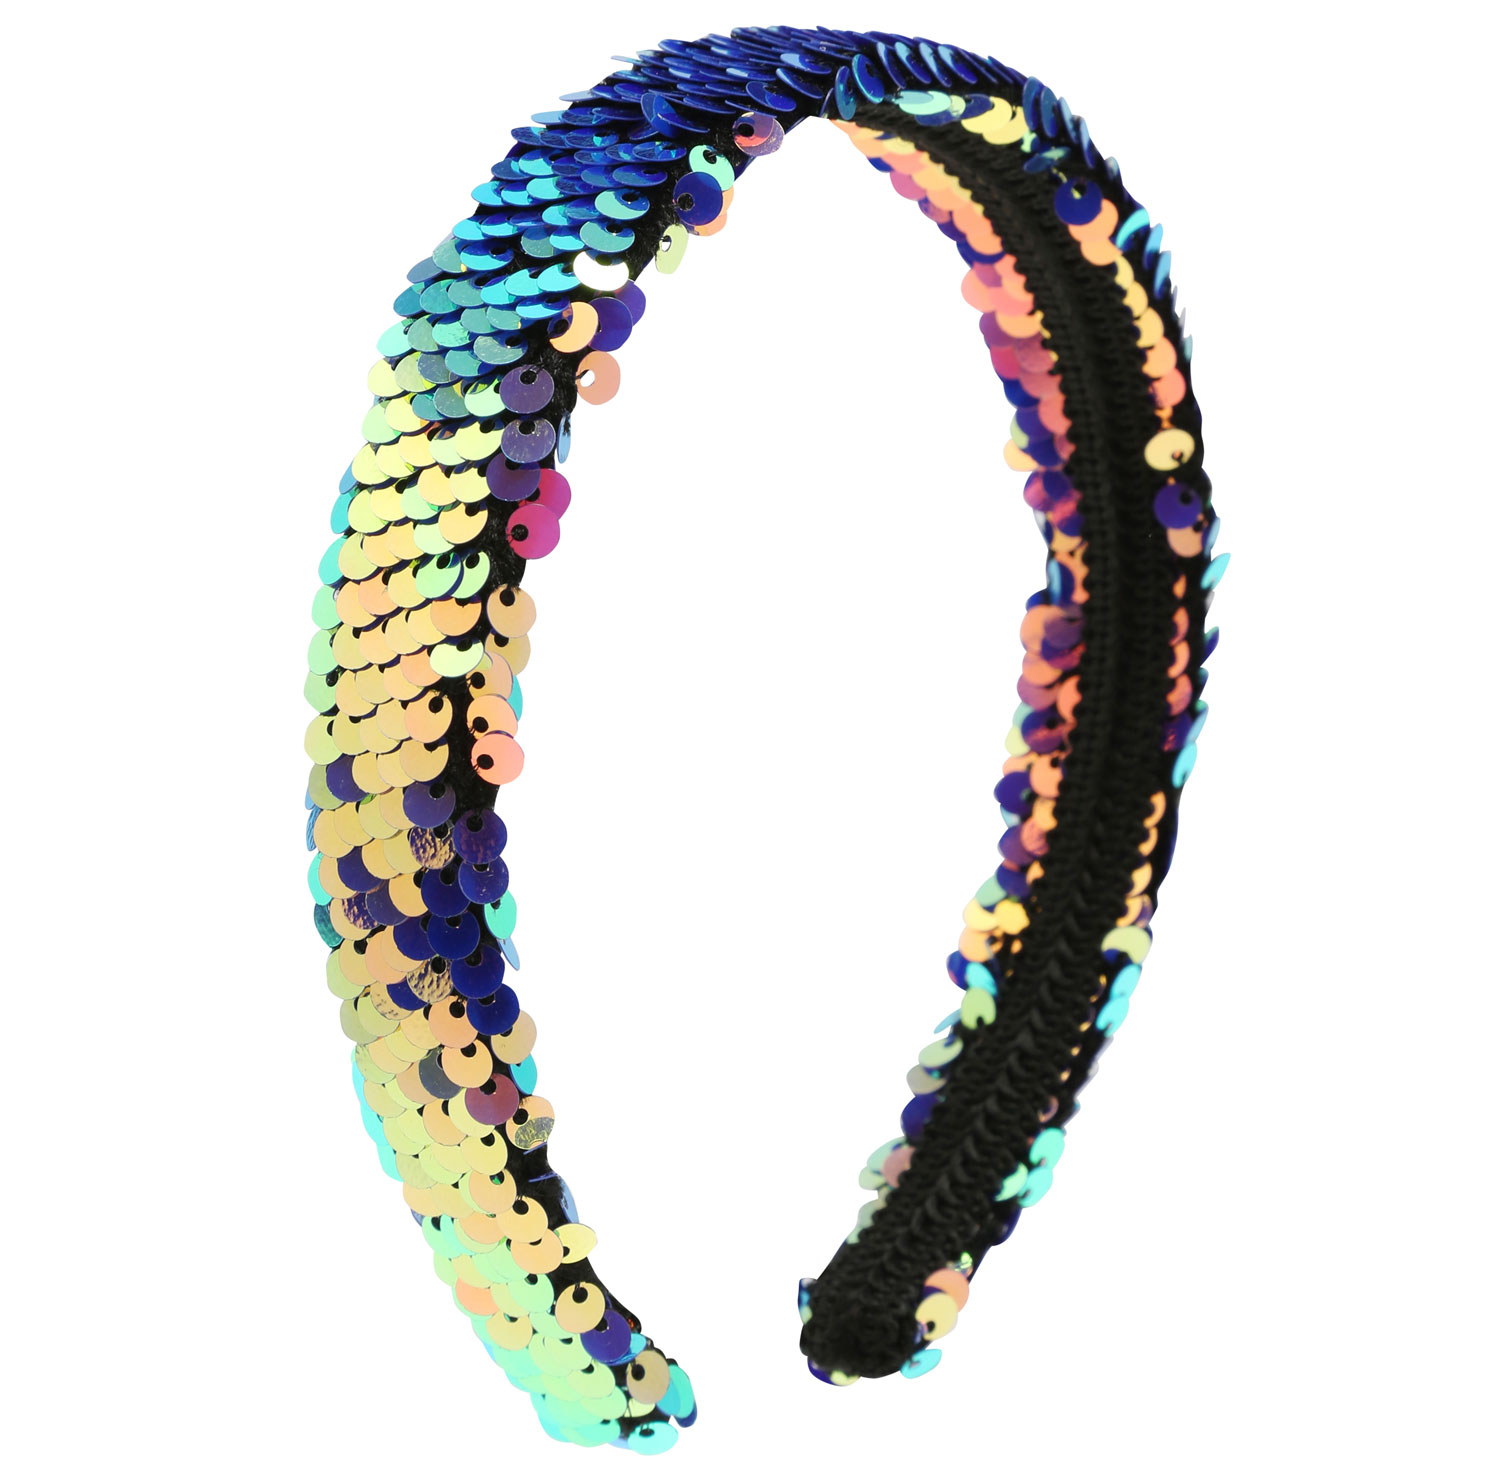 M & CO Sequin hairband, £4.50